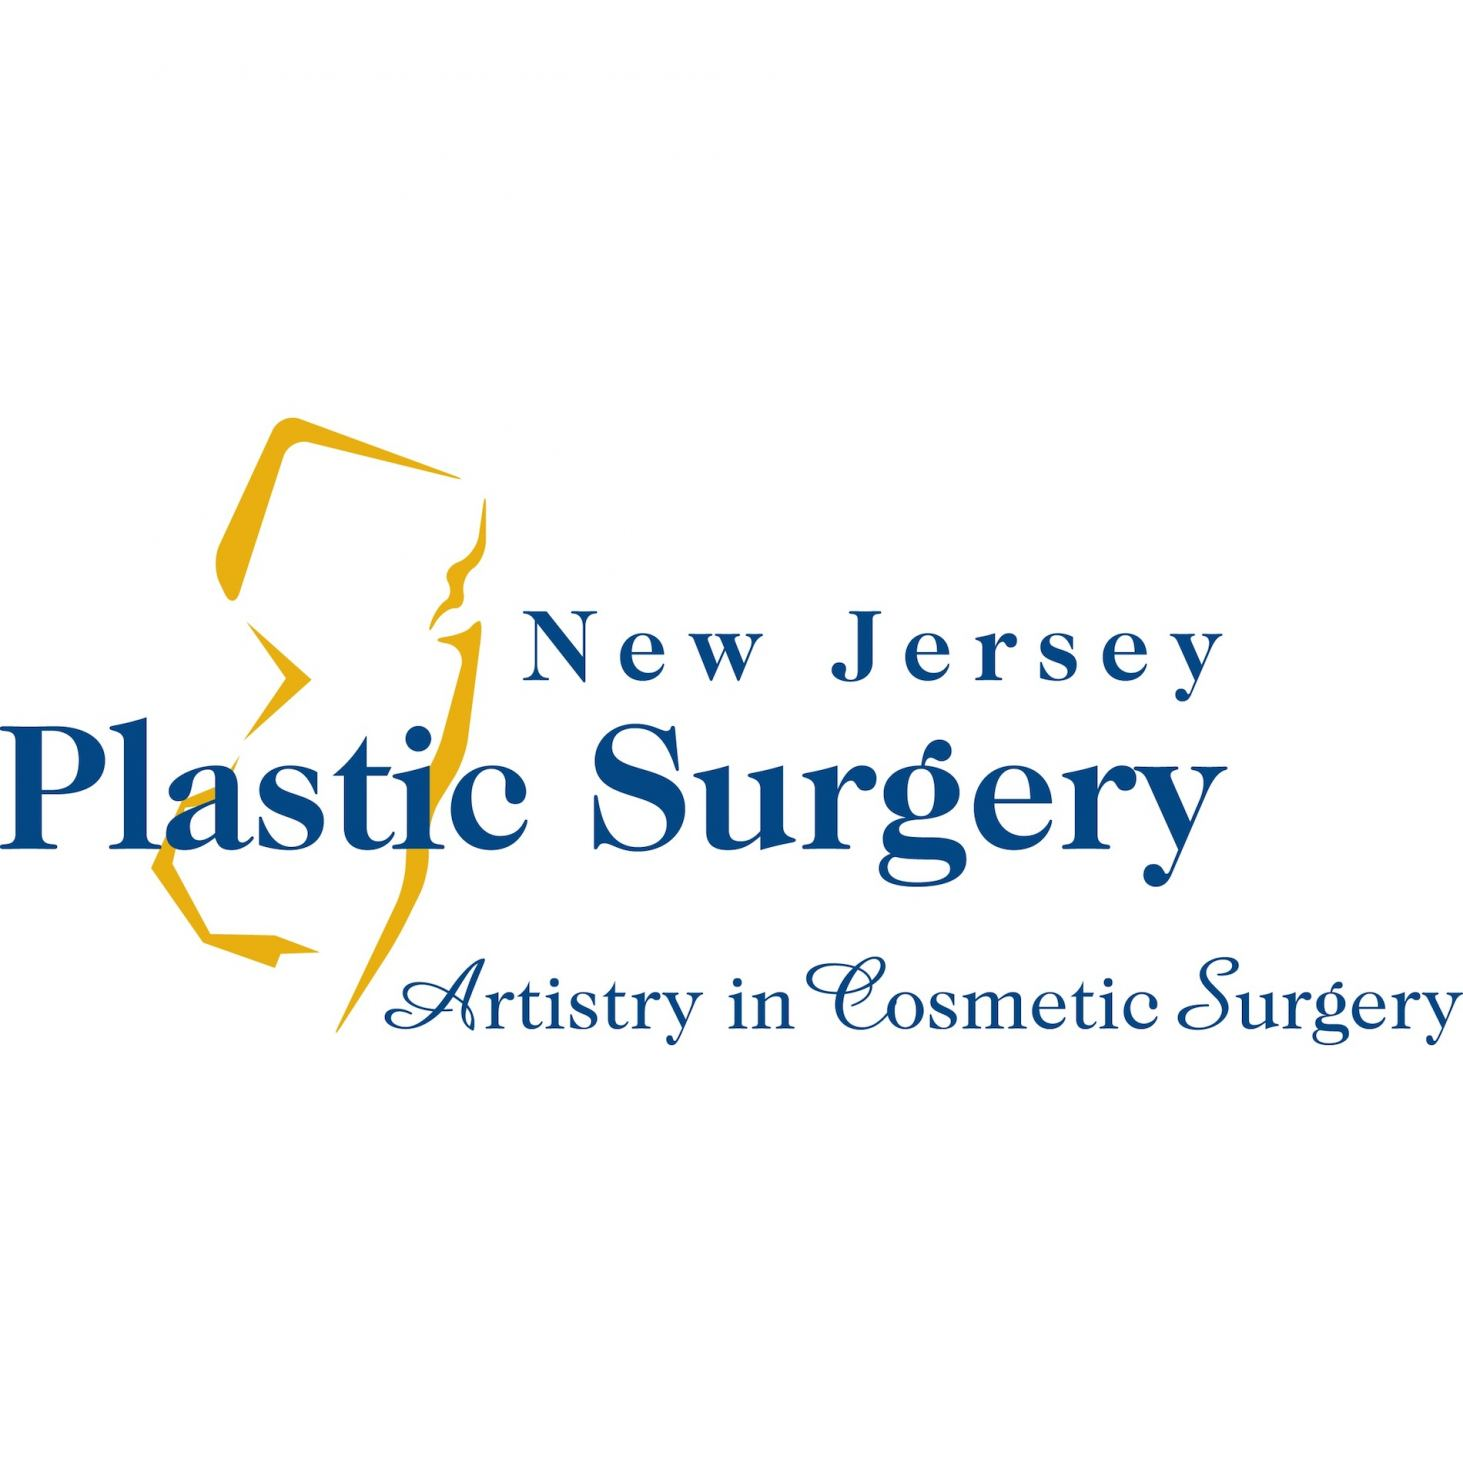 new jersey plastic surgery photo - 1